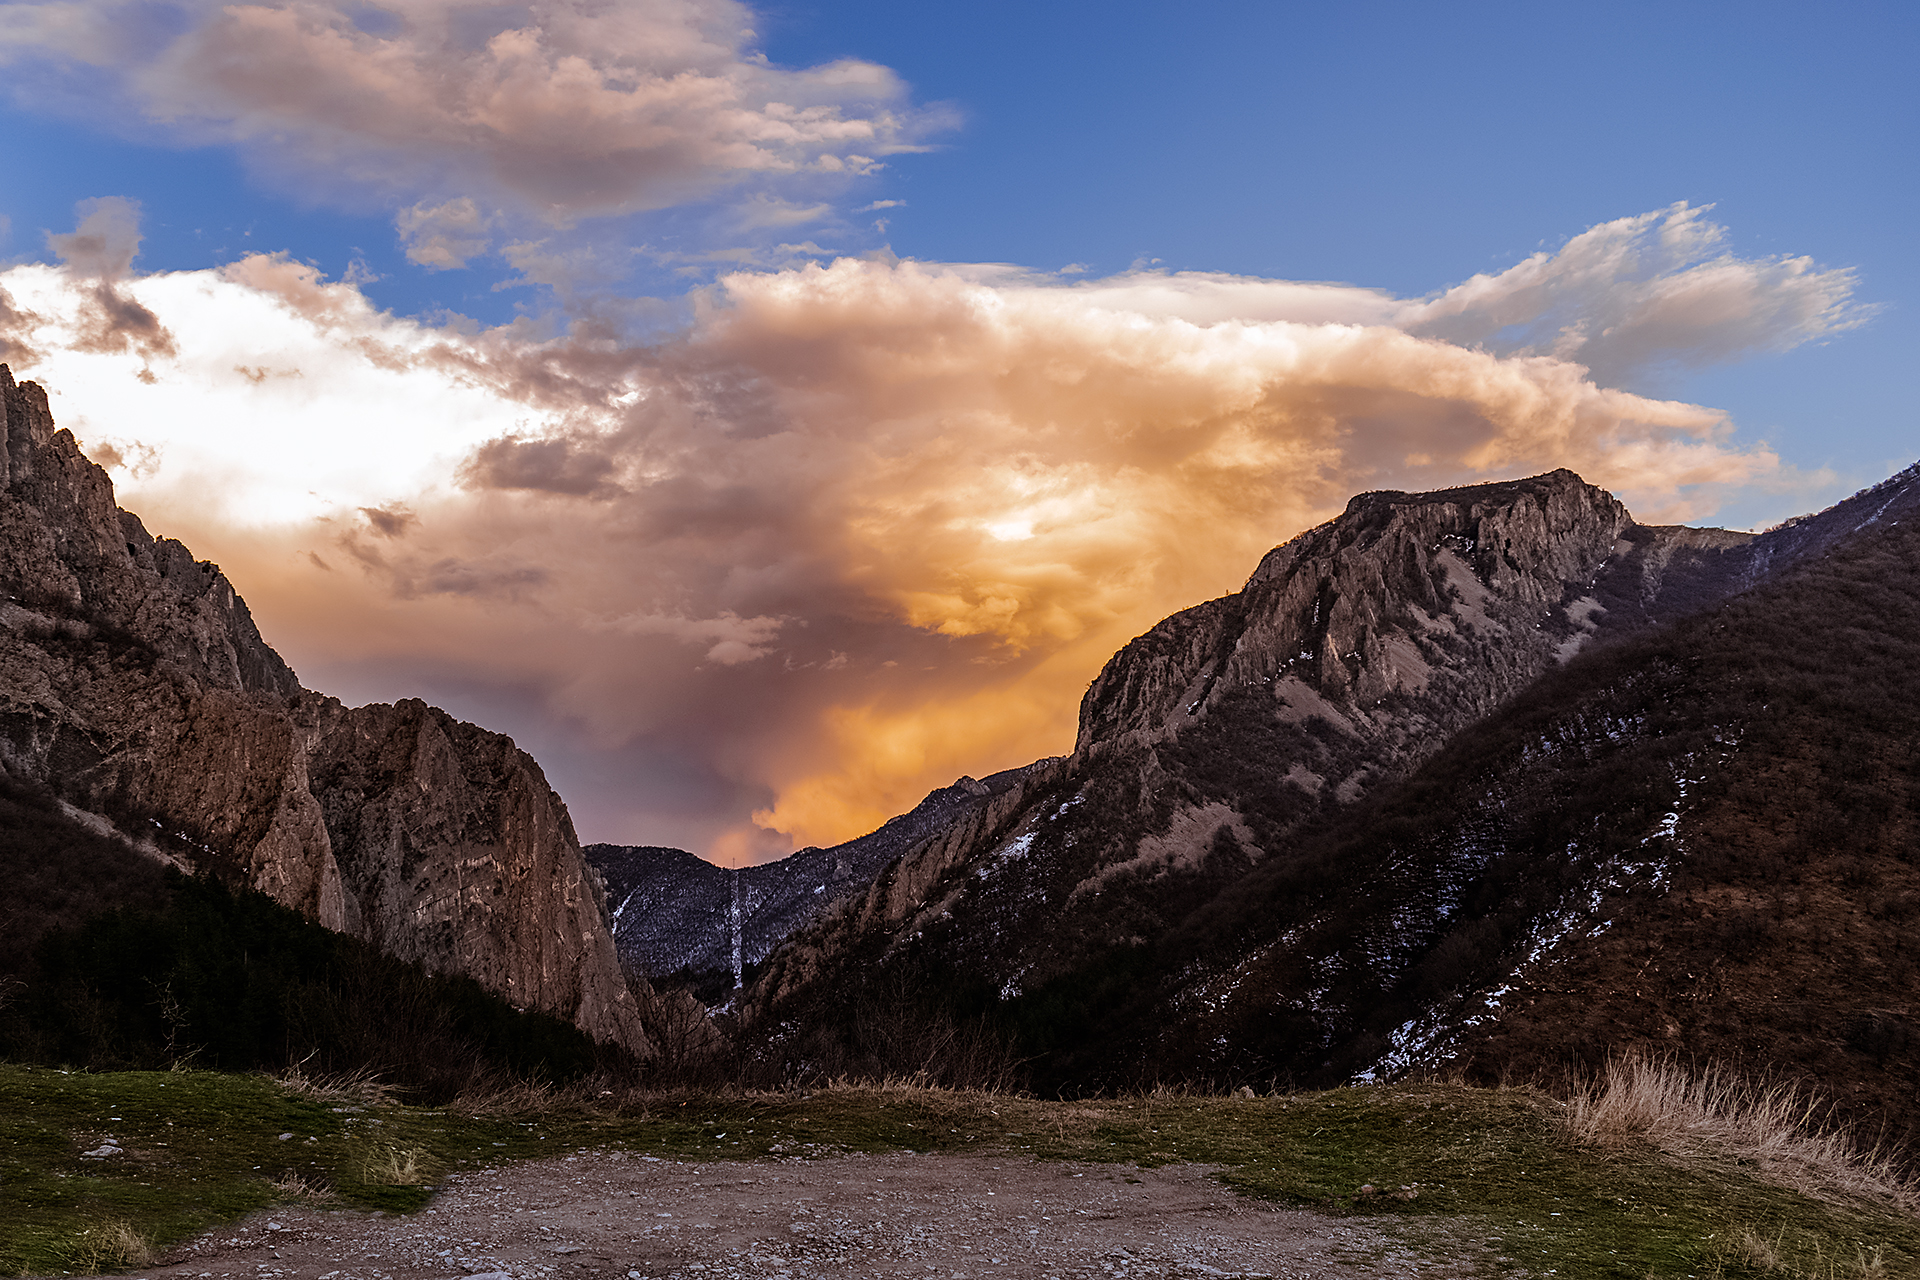 Photo in Nature, clouds and storms | Author andiay | PHOTO FORUM